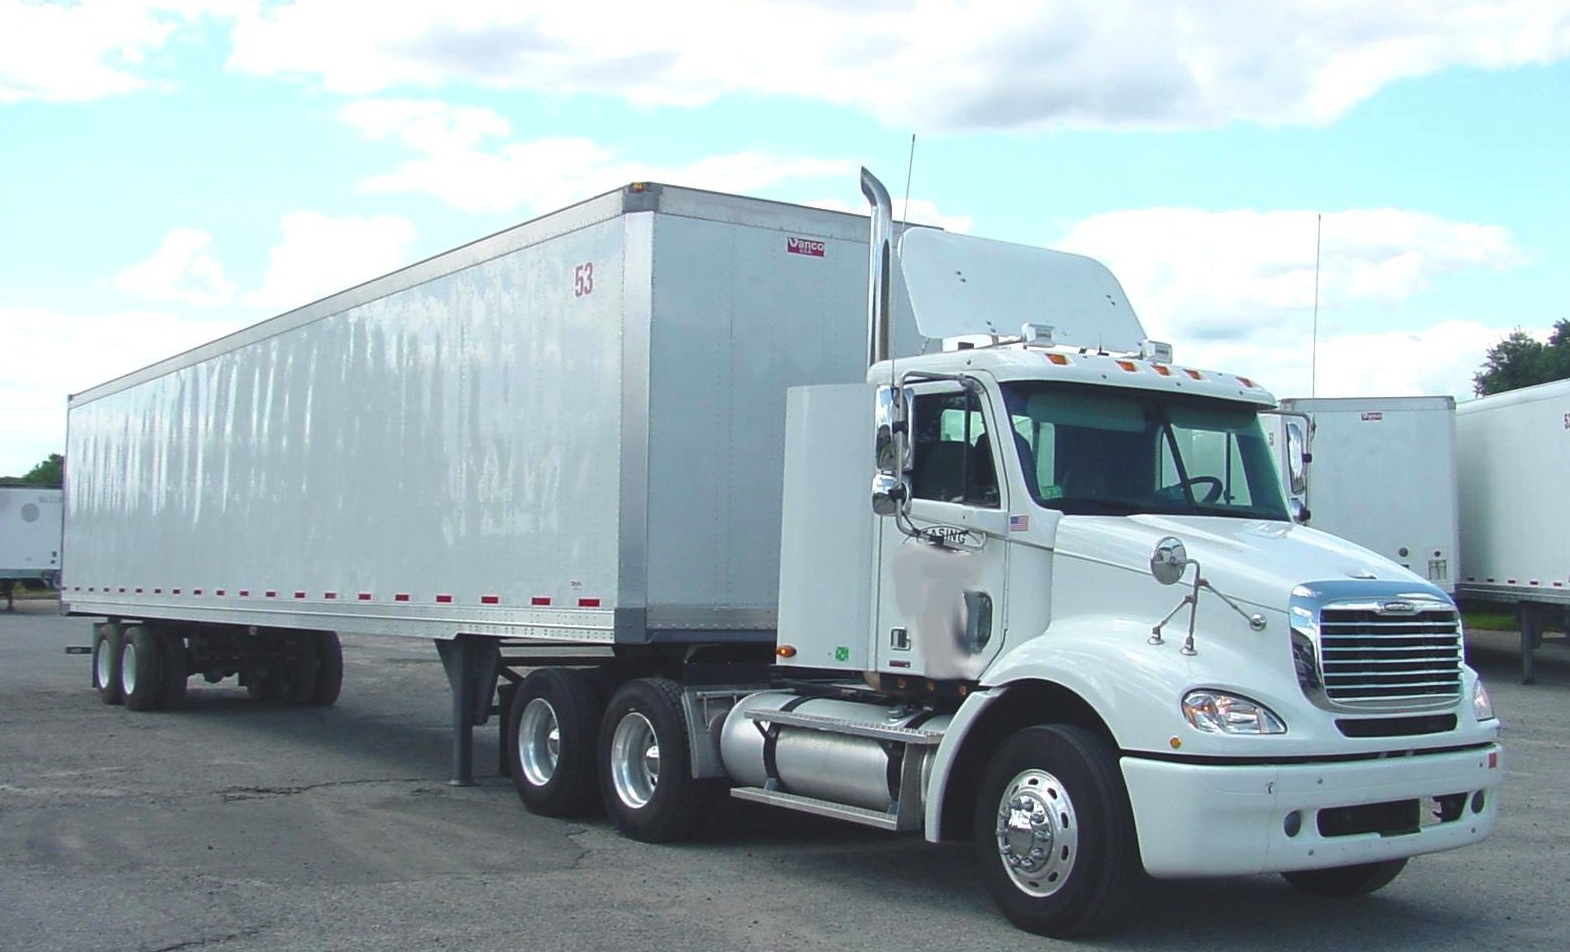 Image of Tractor trailer truck